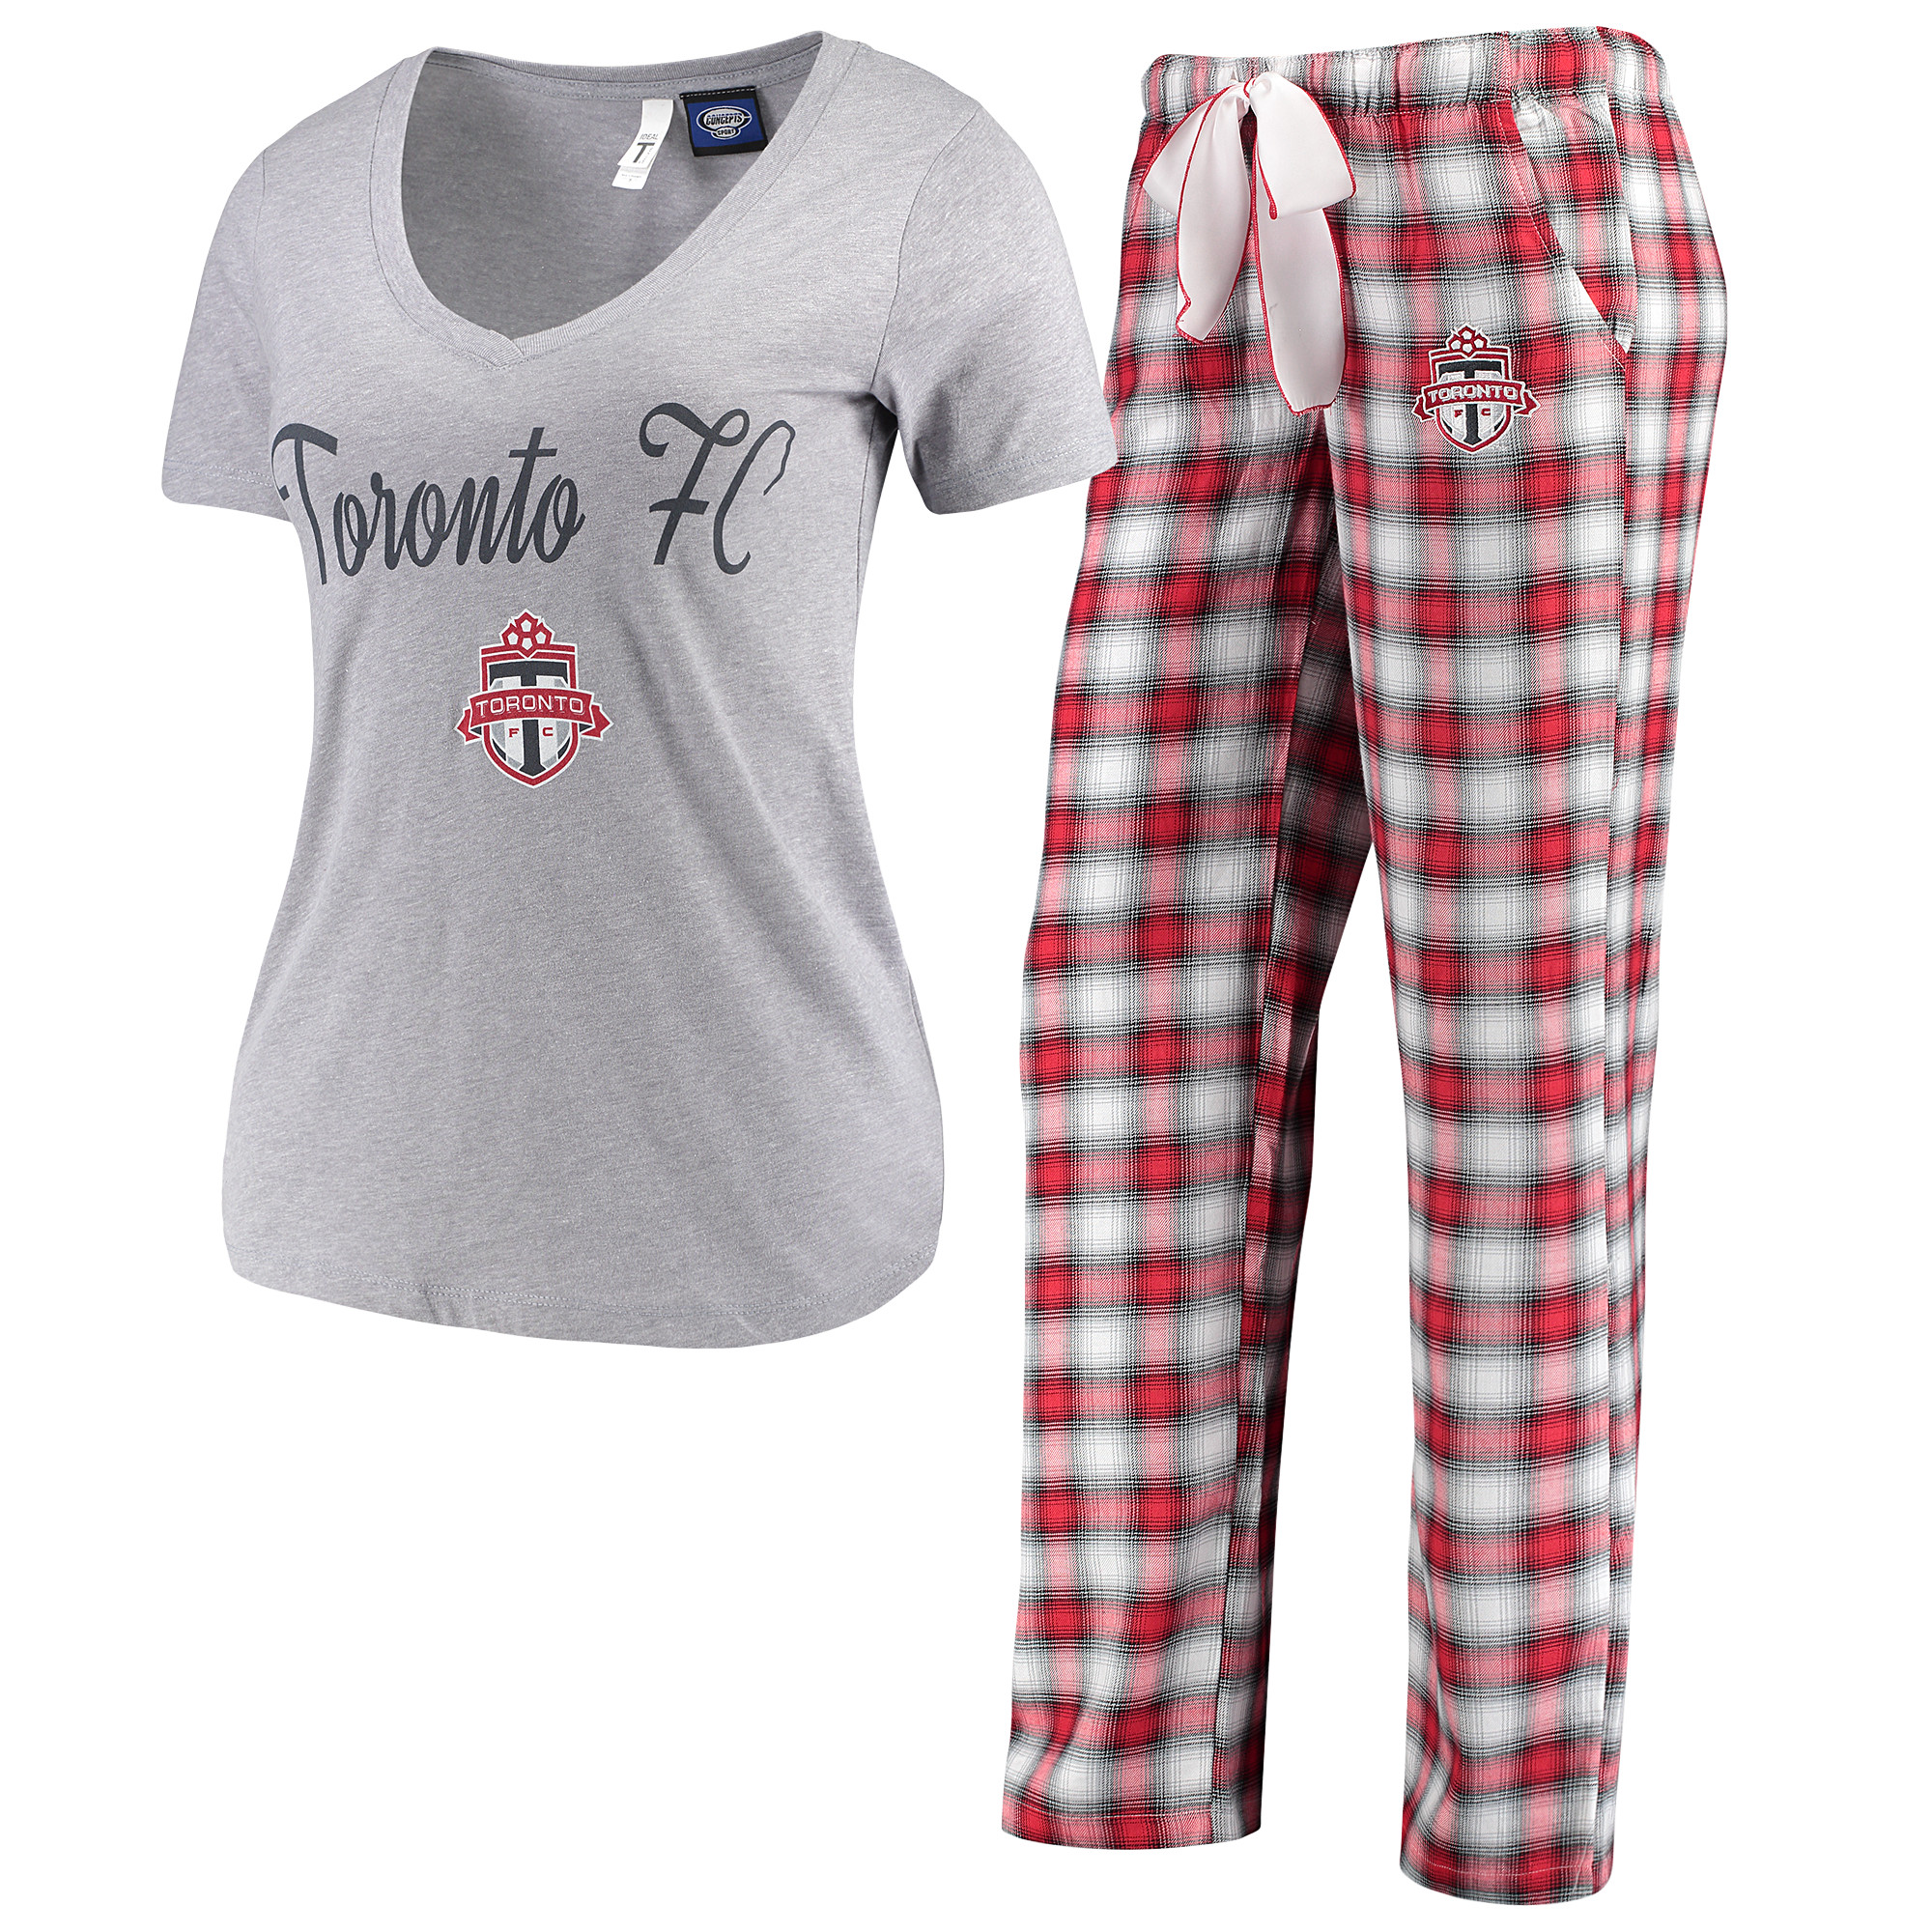 Toronto FC Concepts Sport Women's Forge Flannel Set - Gray/Red